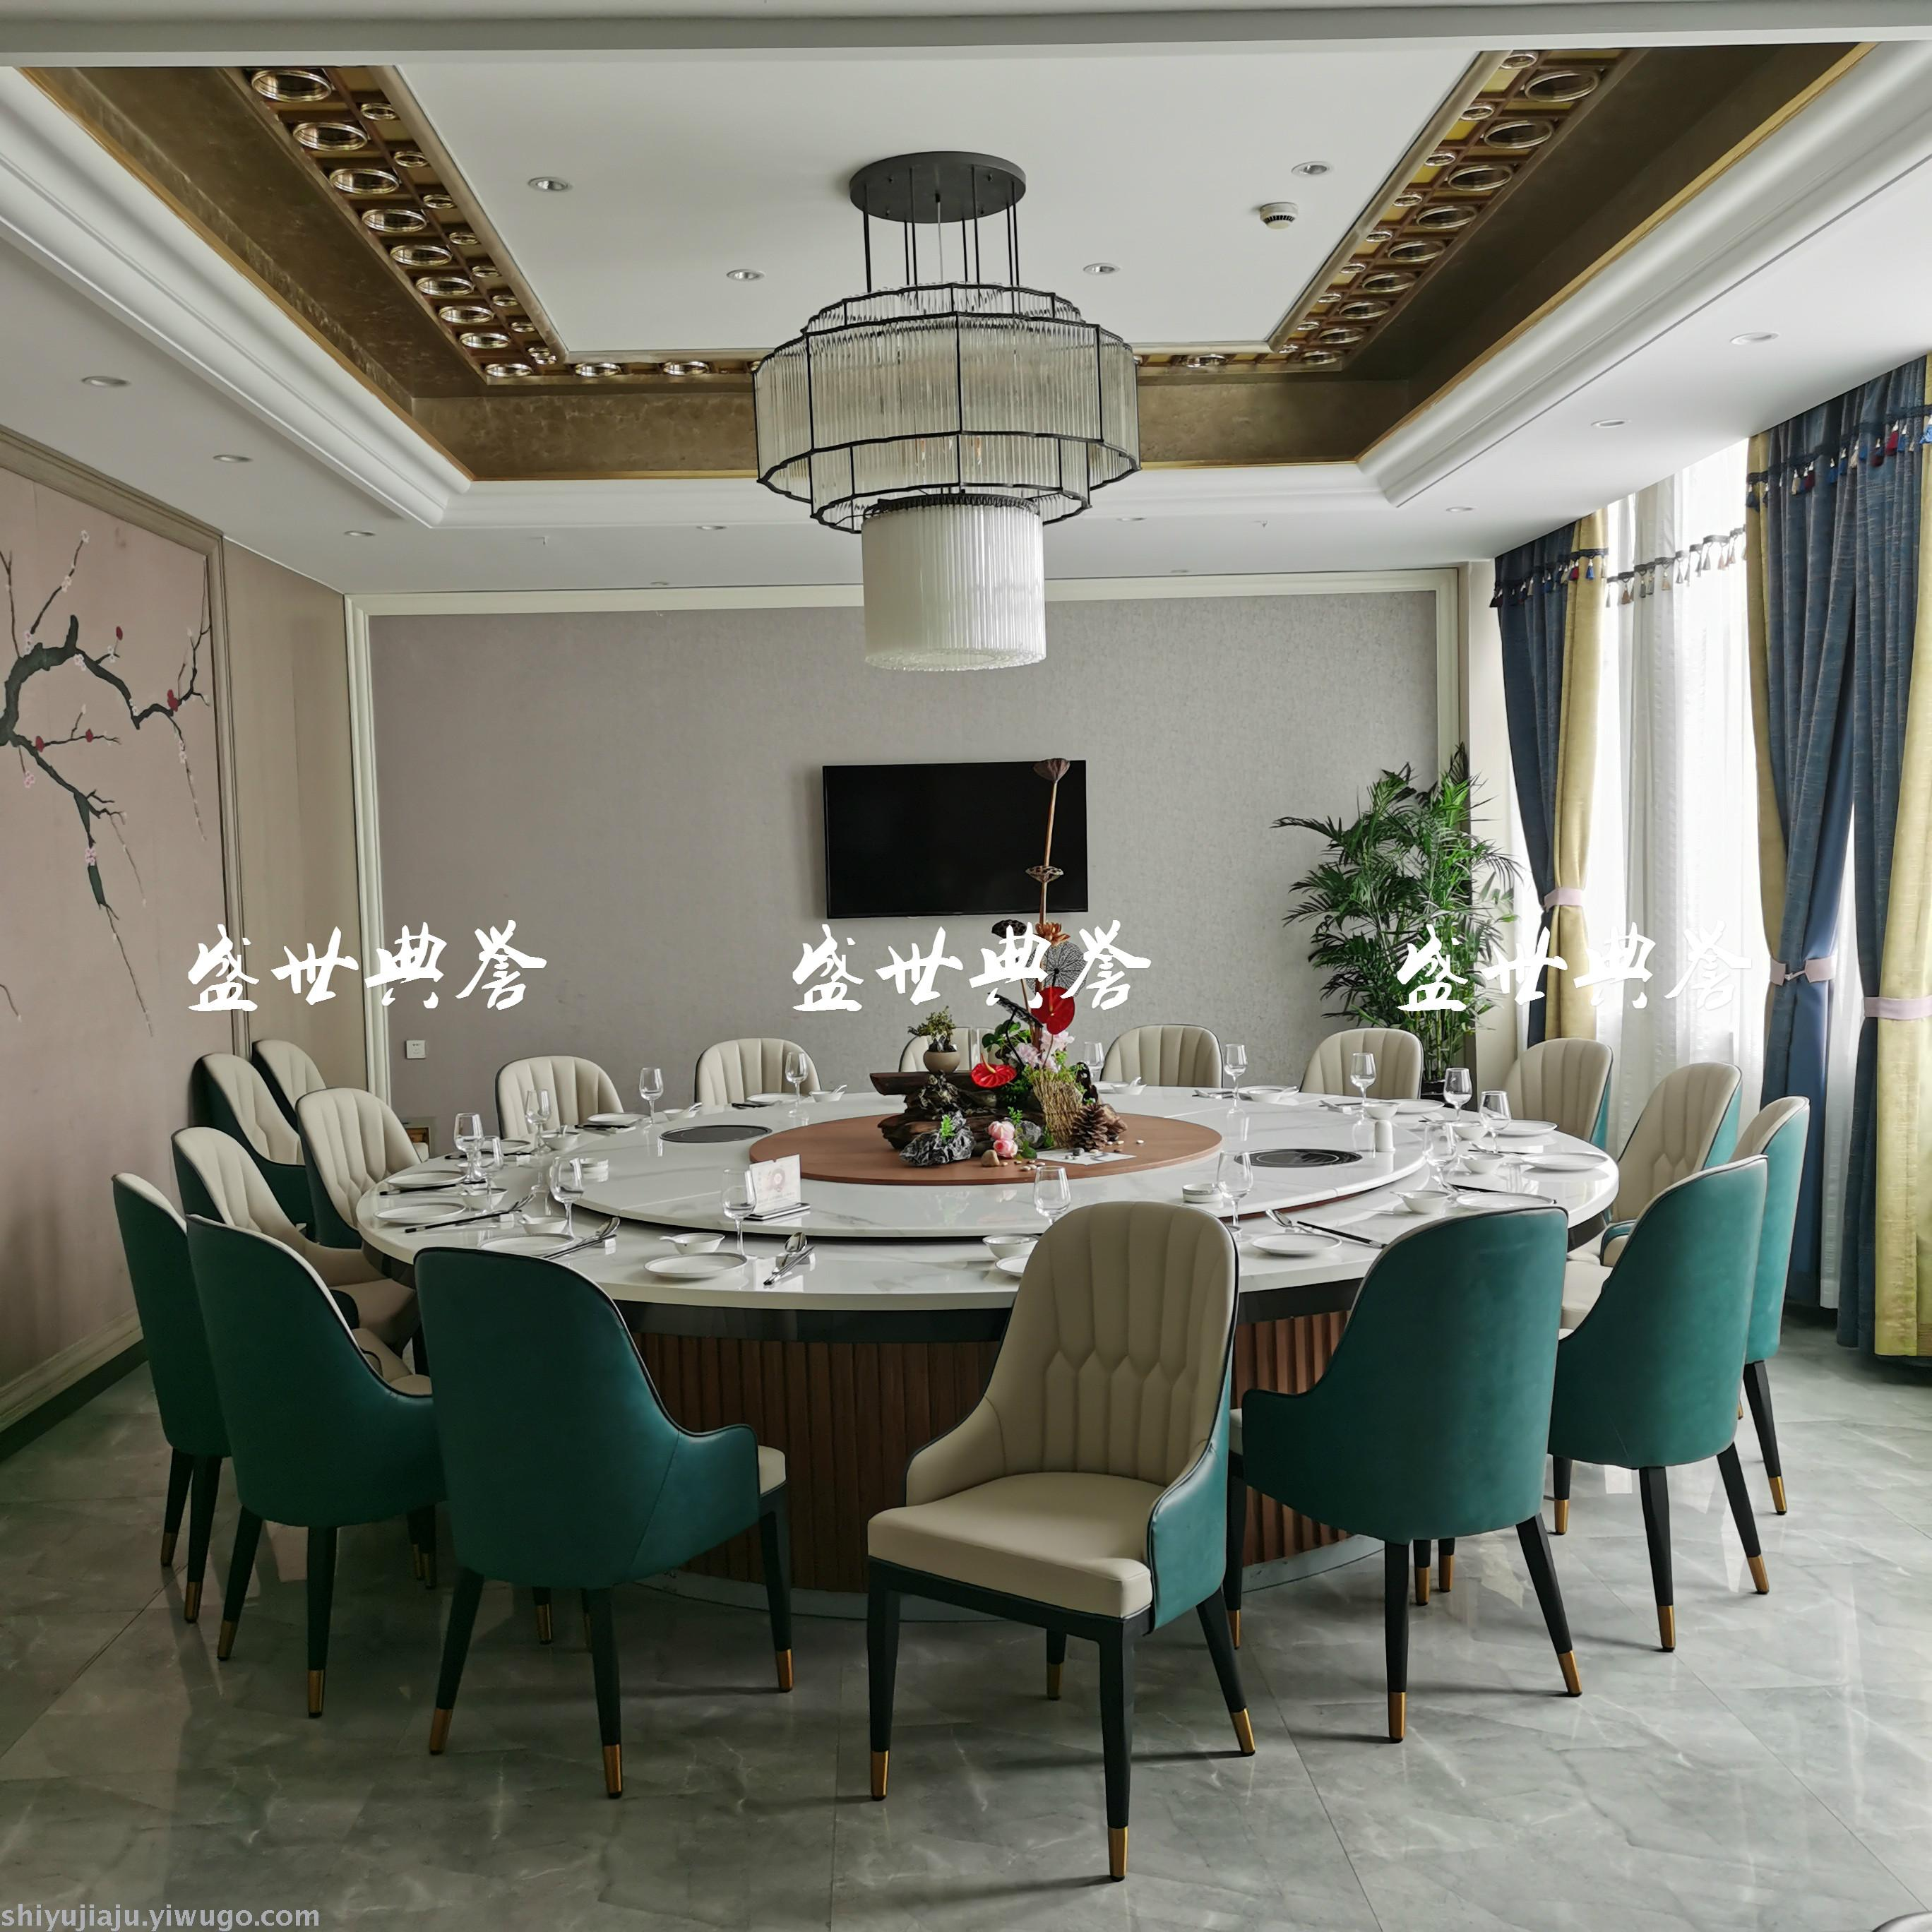 Hotel Room Electric Dining Chair Tea, Pineapple Dining Room Chairs